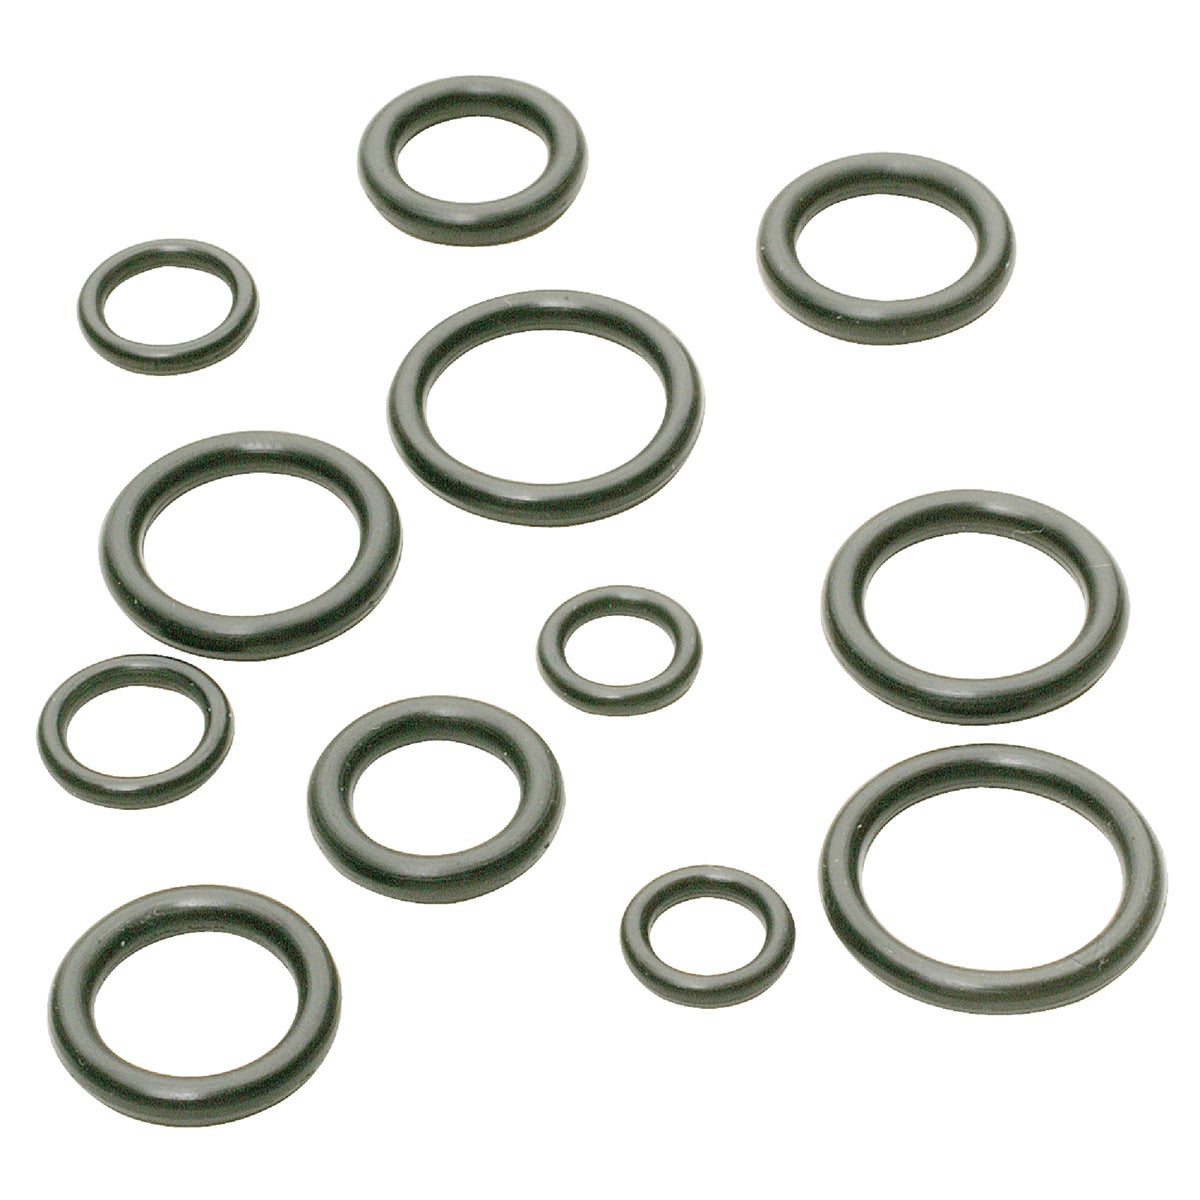 ASSORTED SMALL O-RINGS - 402317 by Plumb Pak/keeney Mfg